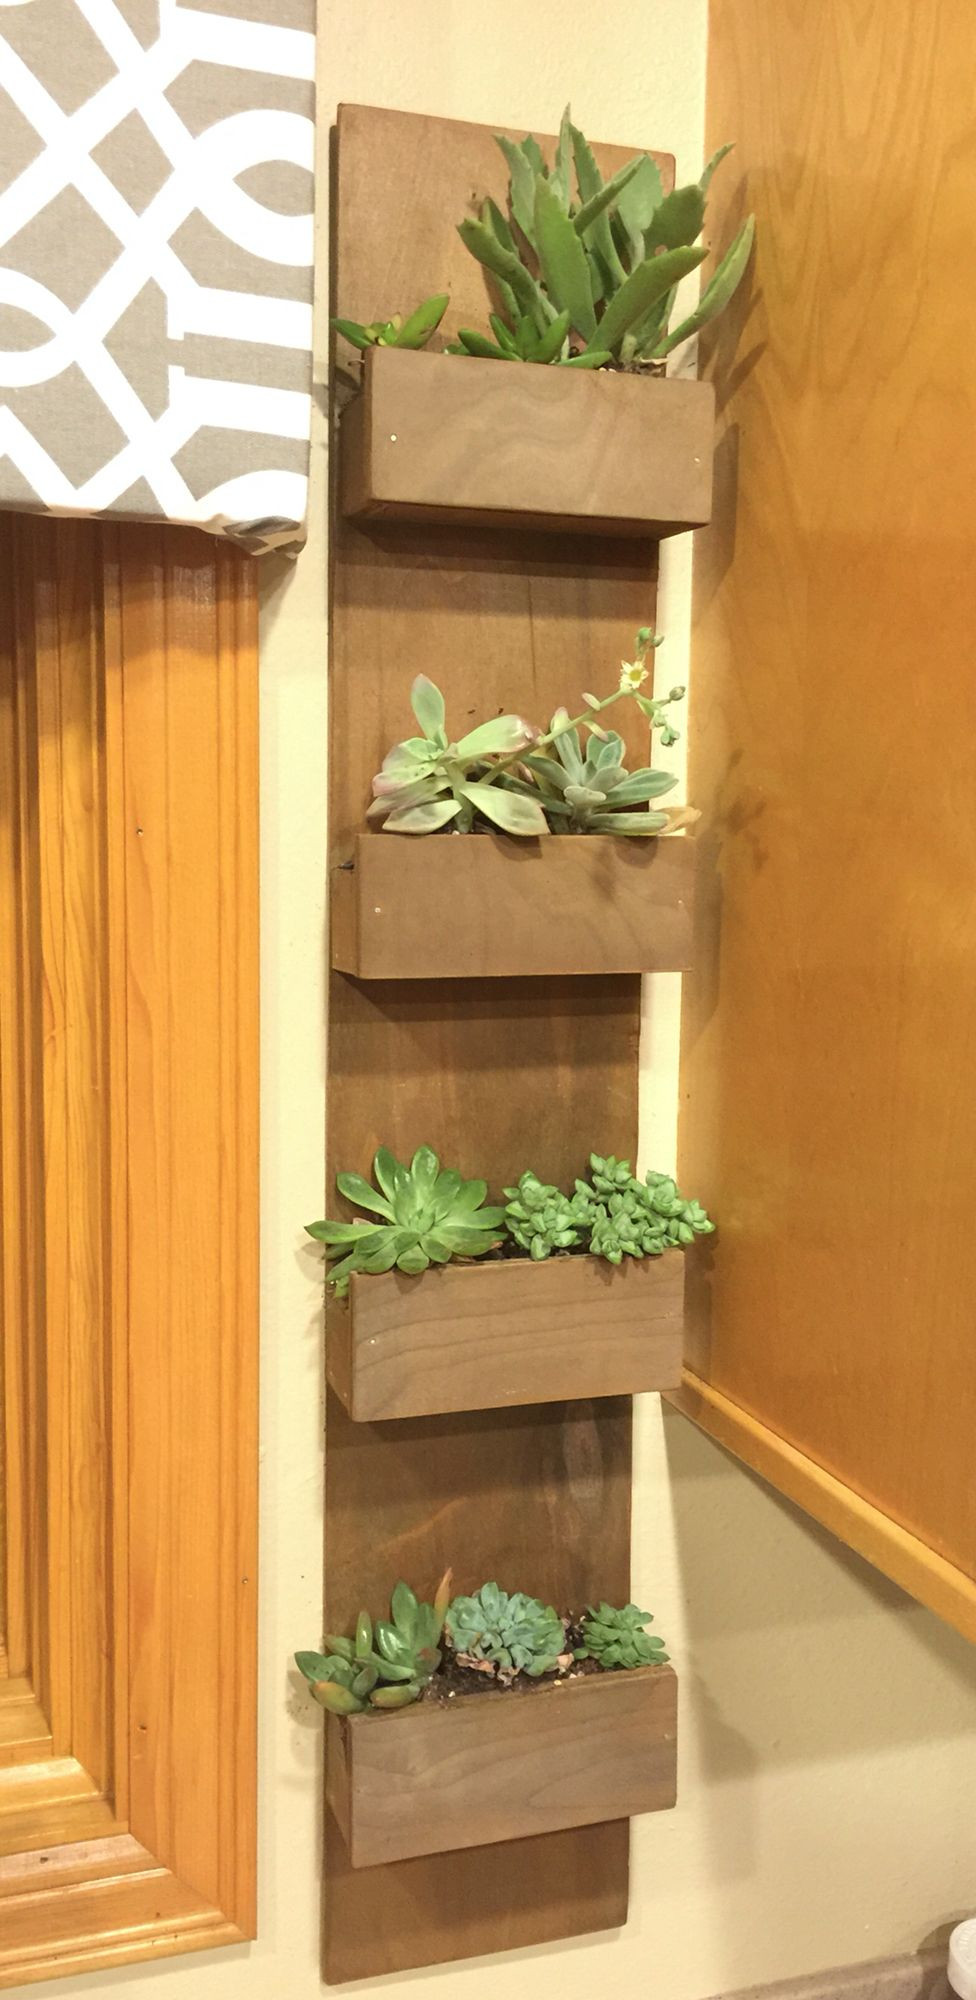 Best ideas about DIY Succulent Wall . Save or Pin DIY hanging succulent garden wall Now.